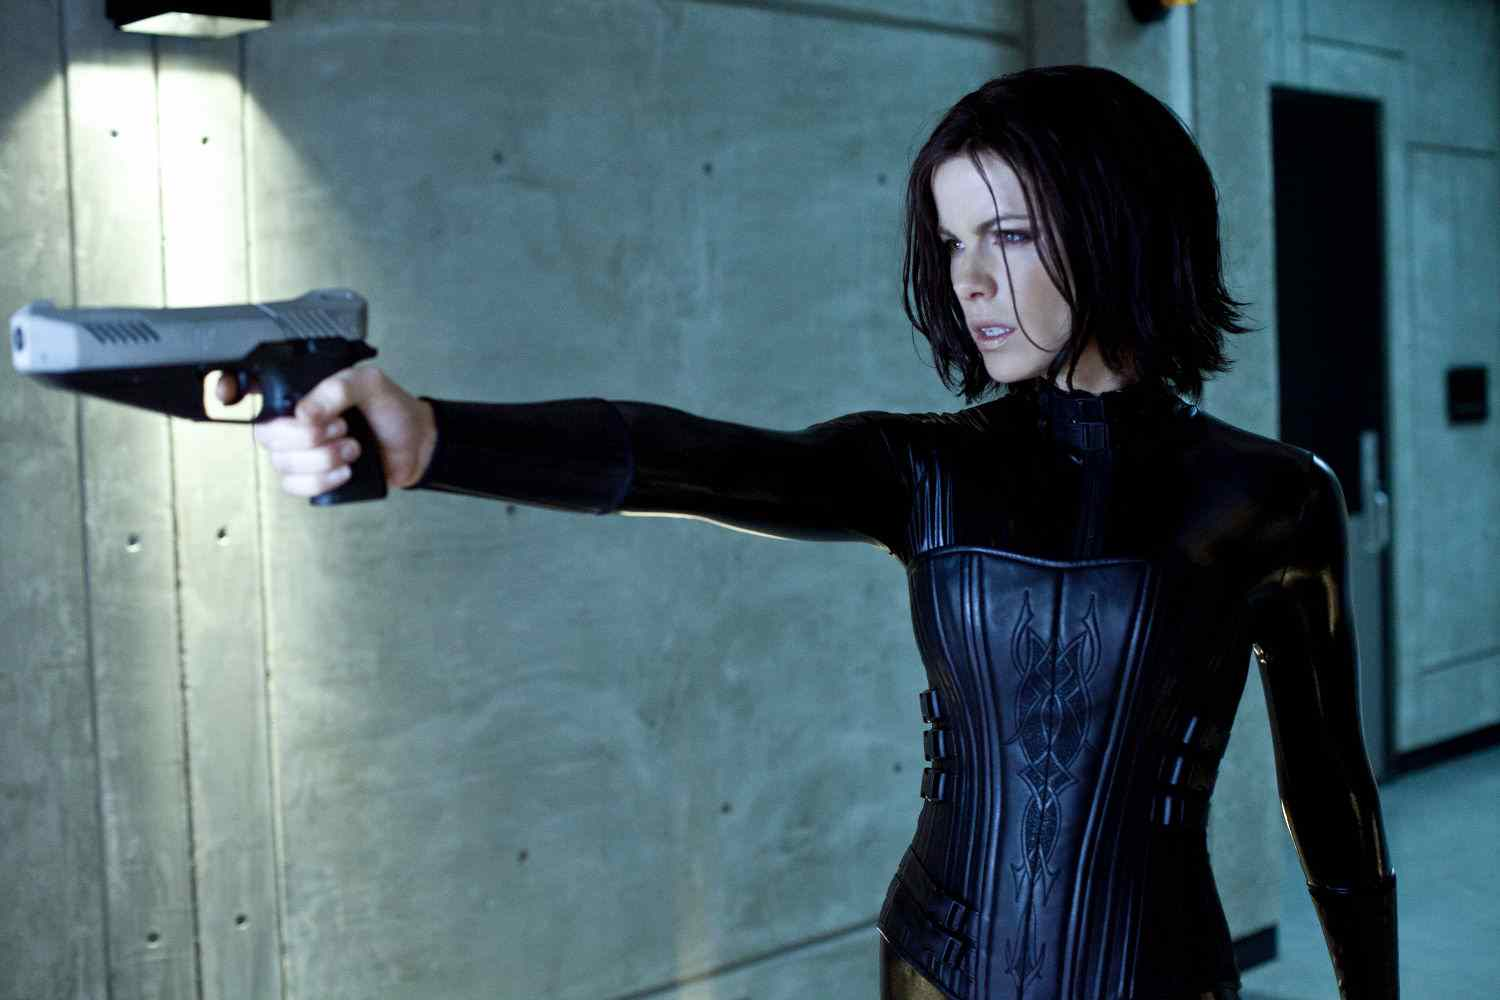 Kate Beckinsale who plays Selene in the underworld and movie series.